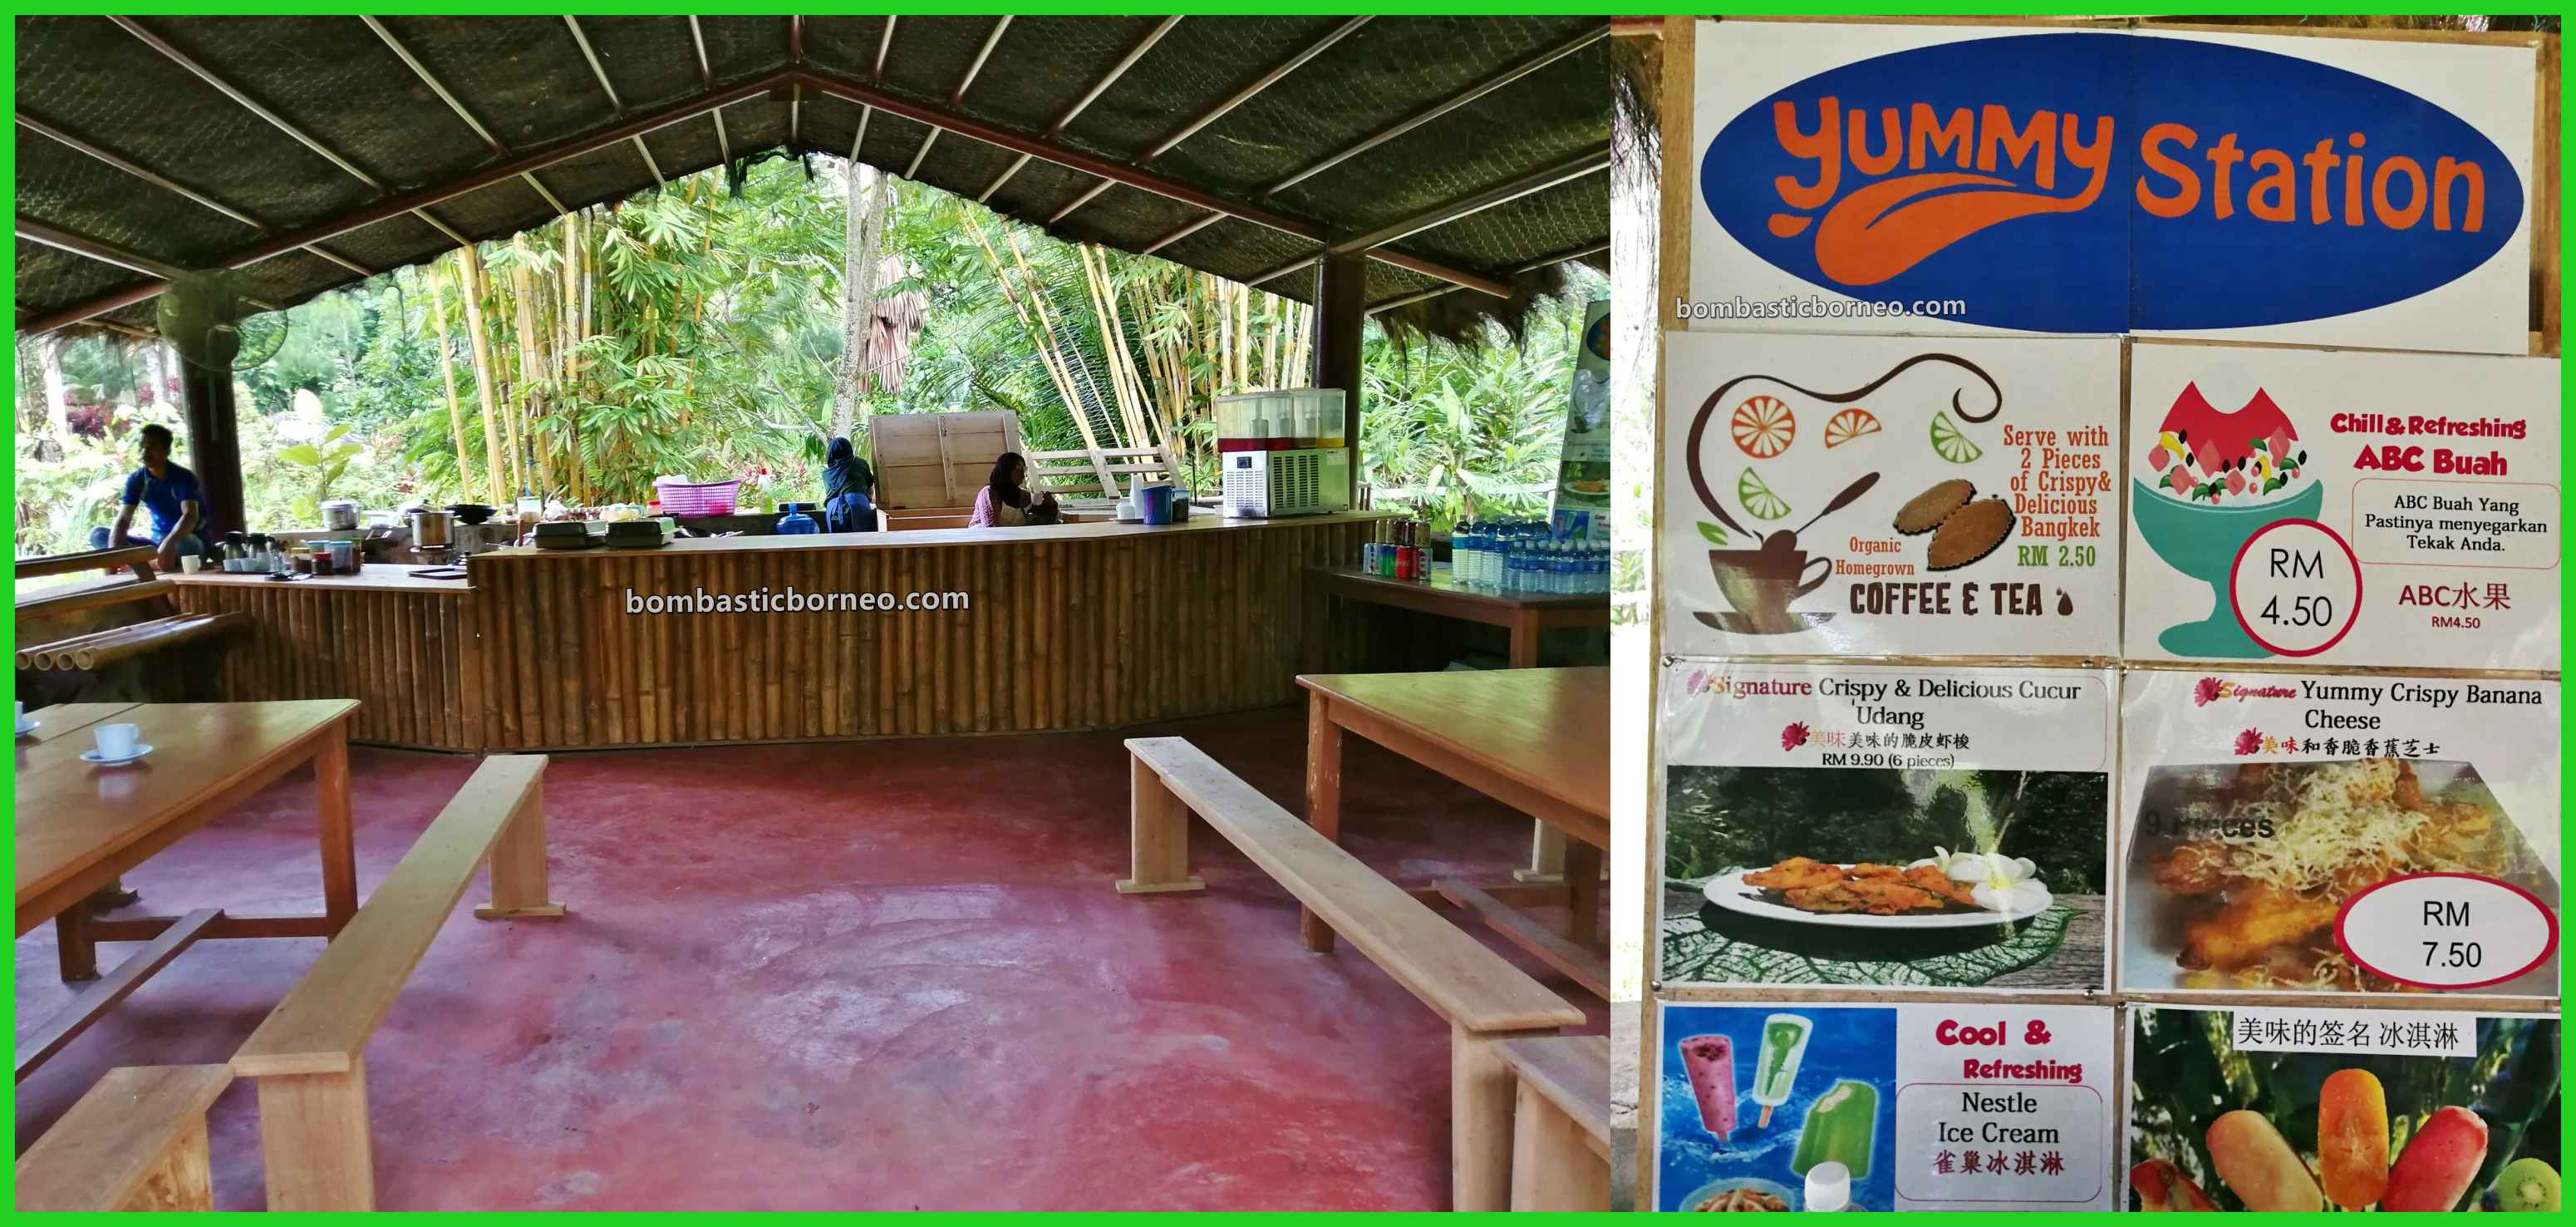 accommodation, chalets, adventure, nature, outdoor, backpackers, destination, recreational, Malaysia, Sabah, tourist attraction, travel guide, Trans Borneo, 马来西亚沙巴, 斗湖旅游景点,